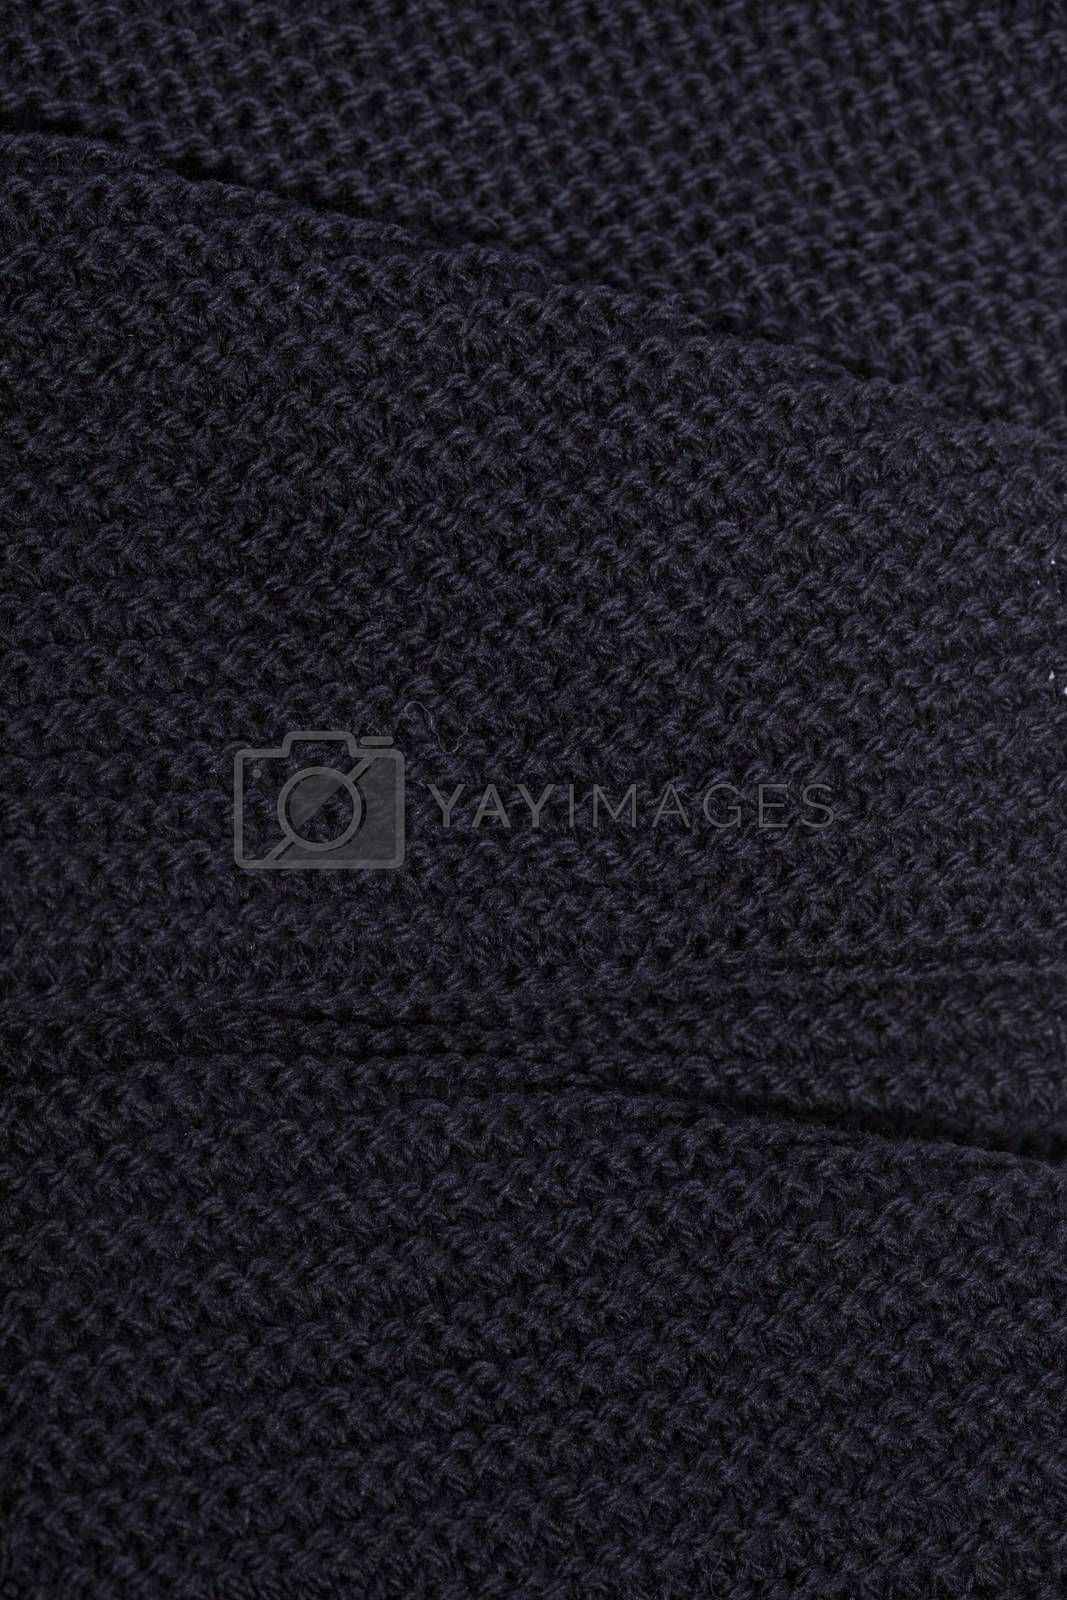 Knitted black scarf texture background.